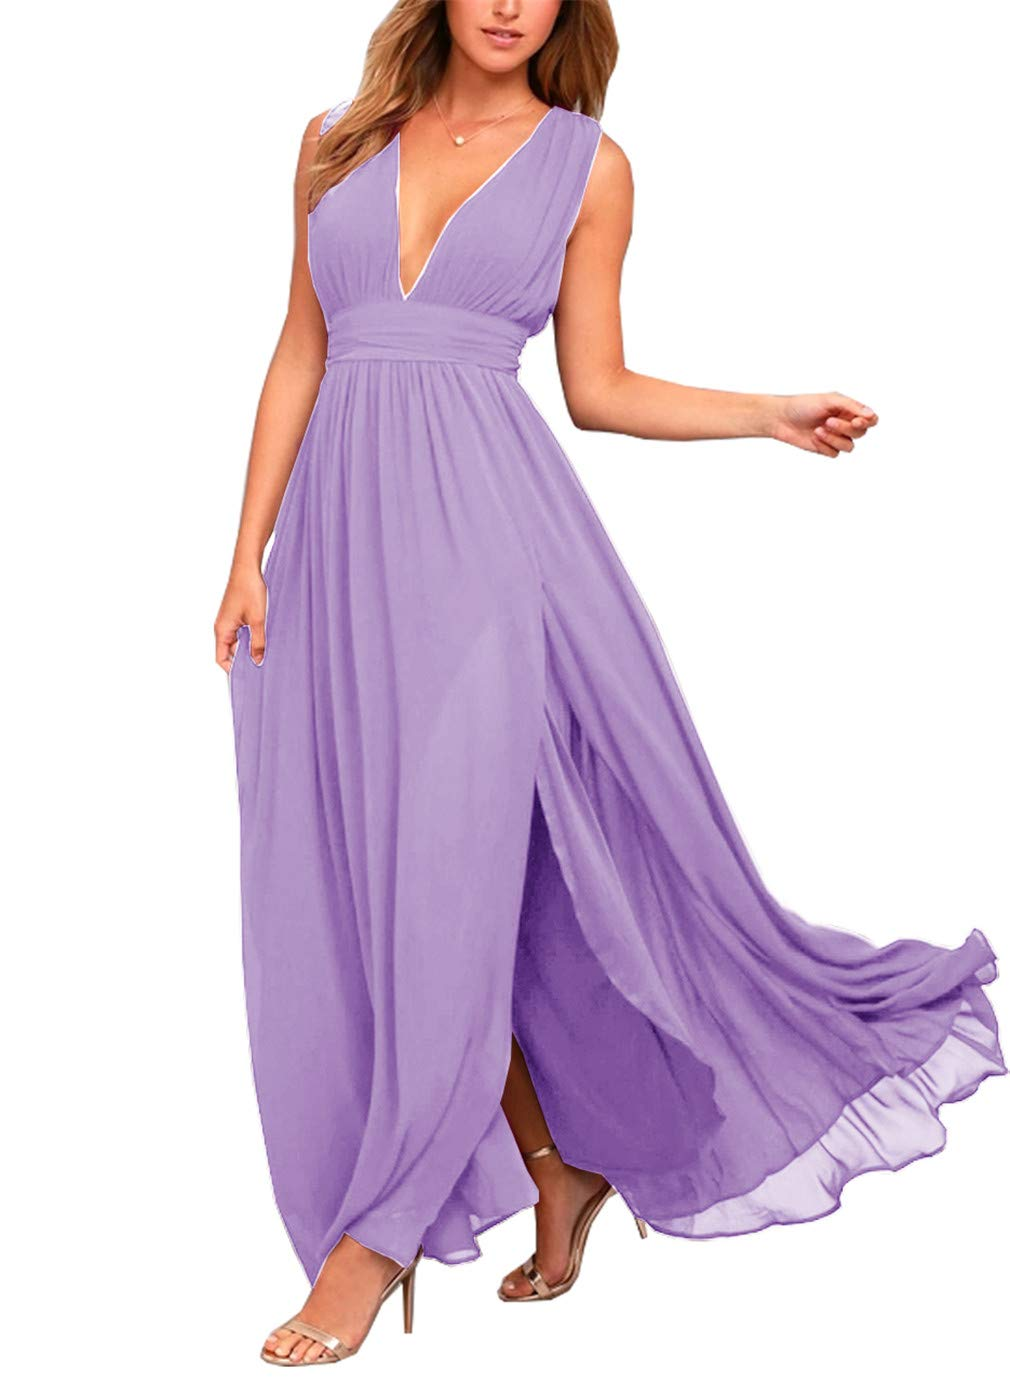 WHZZ Women\'s Chiffon Slit Bridesmaid Dresses V-Neck Long Prom Dresses Plus  Size Lavender